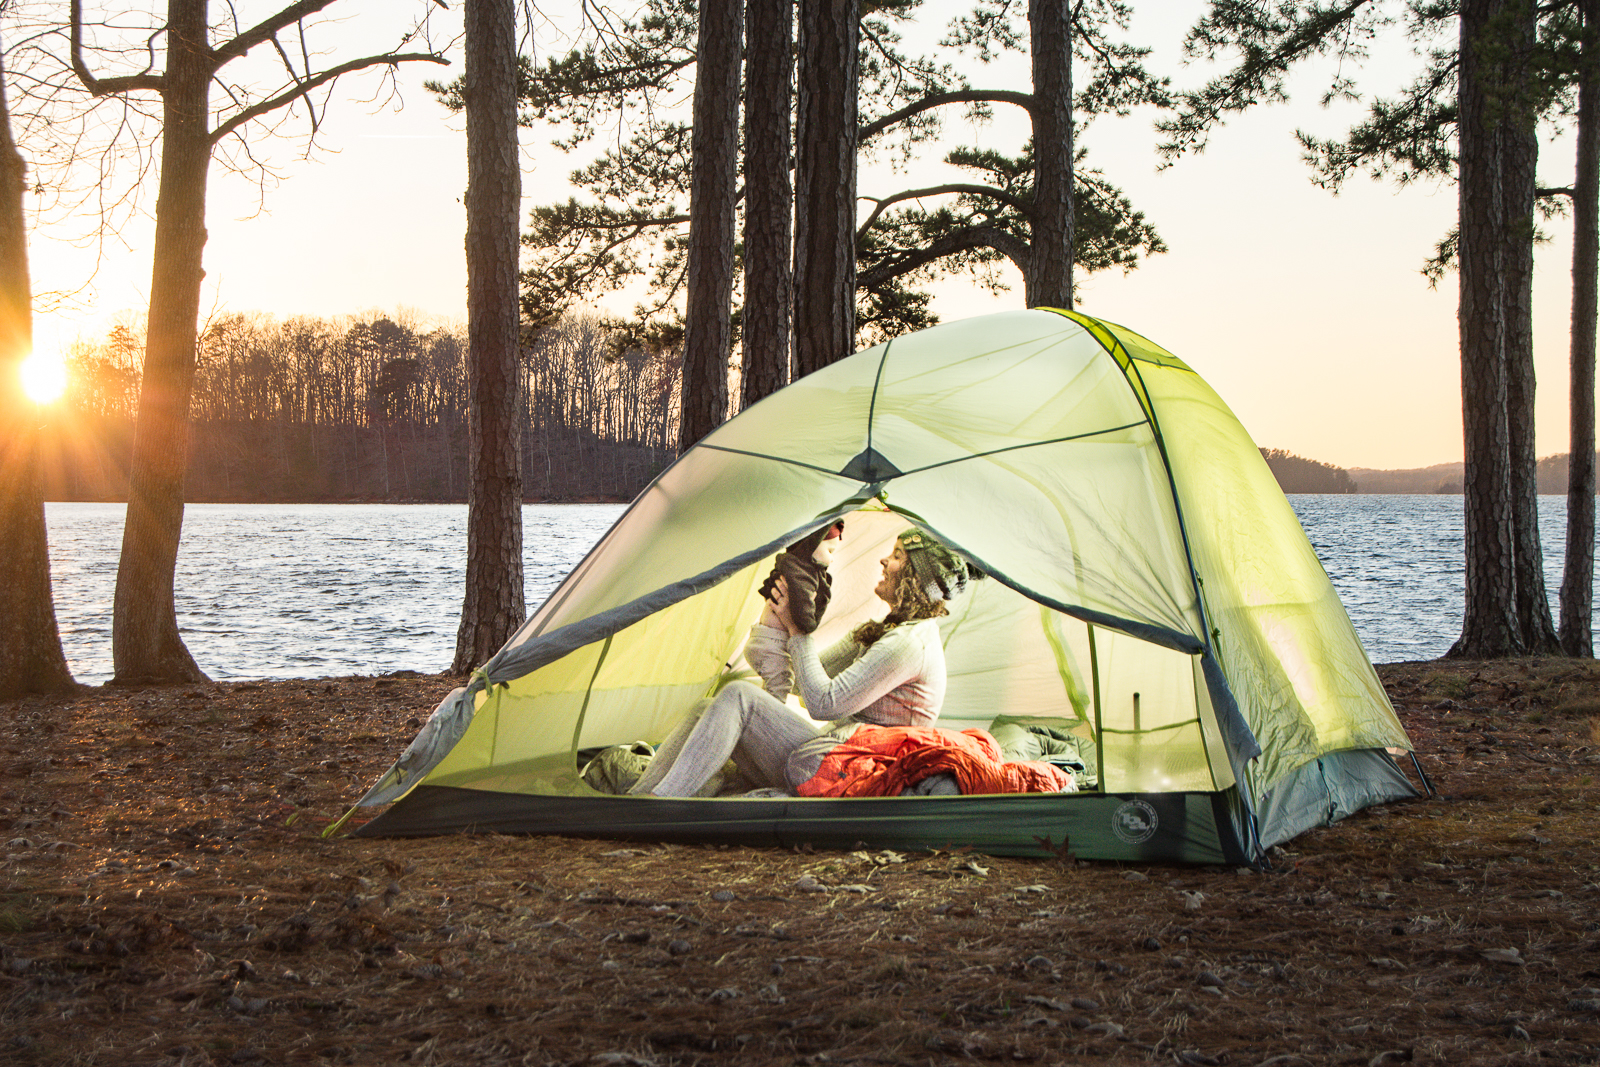 camping gift ideas for mothers day